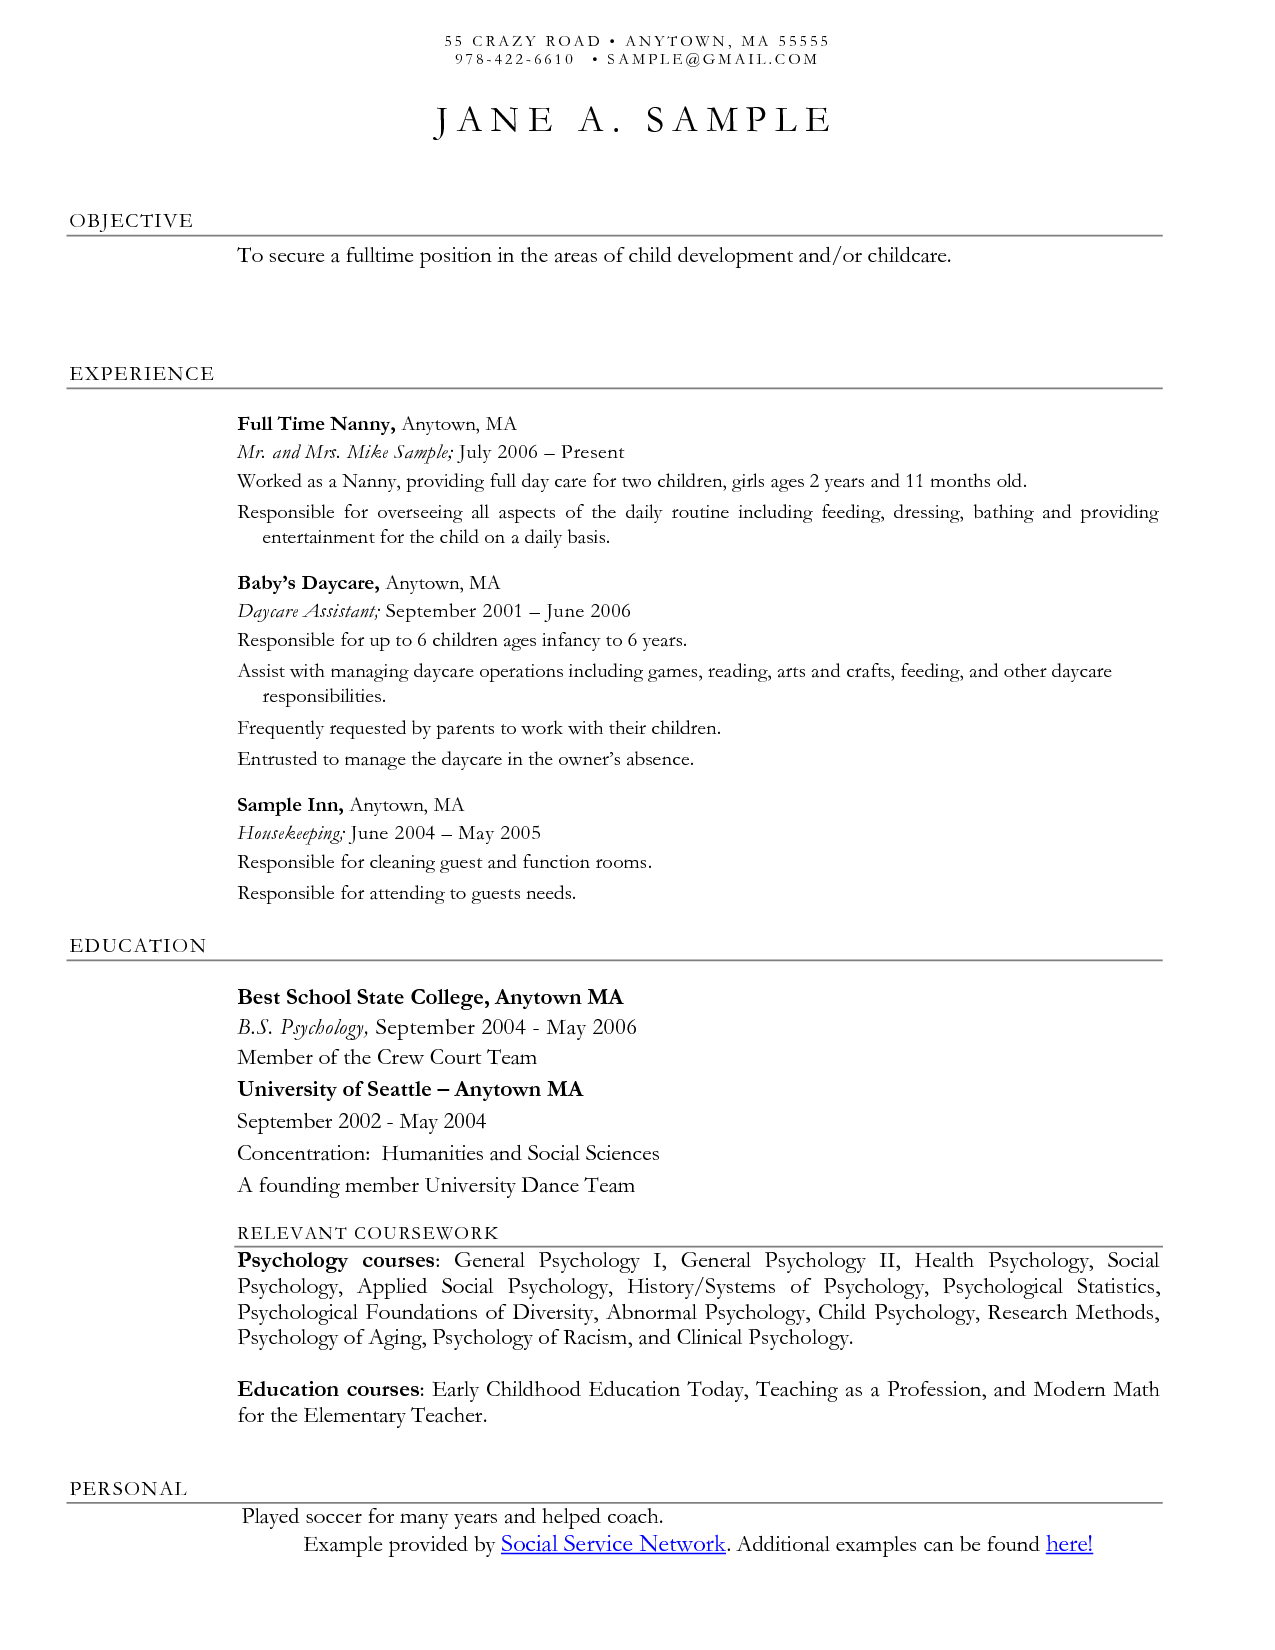 Social Work Resume Sample Child Care Resume Cover Letter  Httpwwwresumecareer